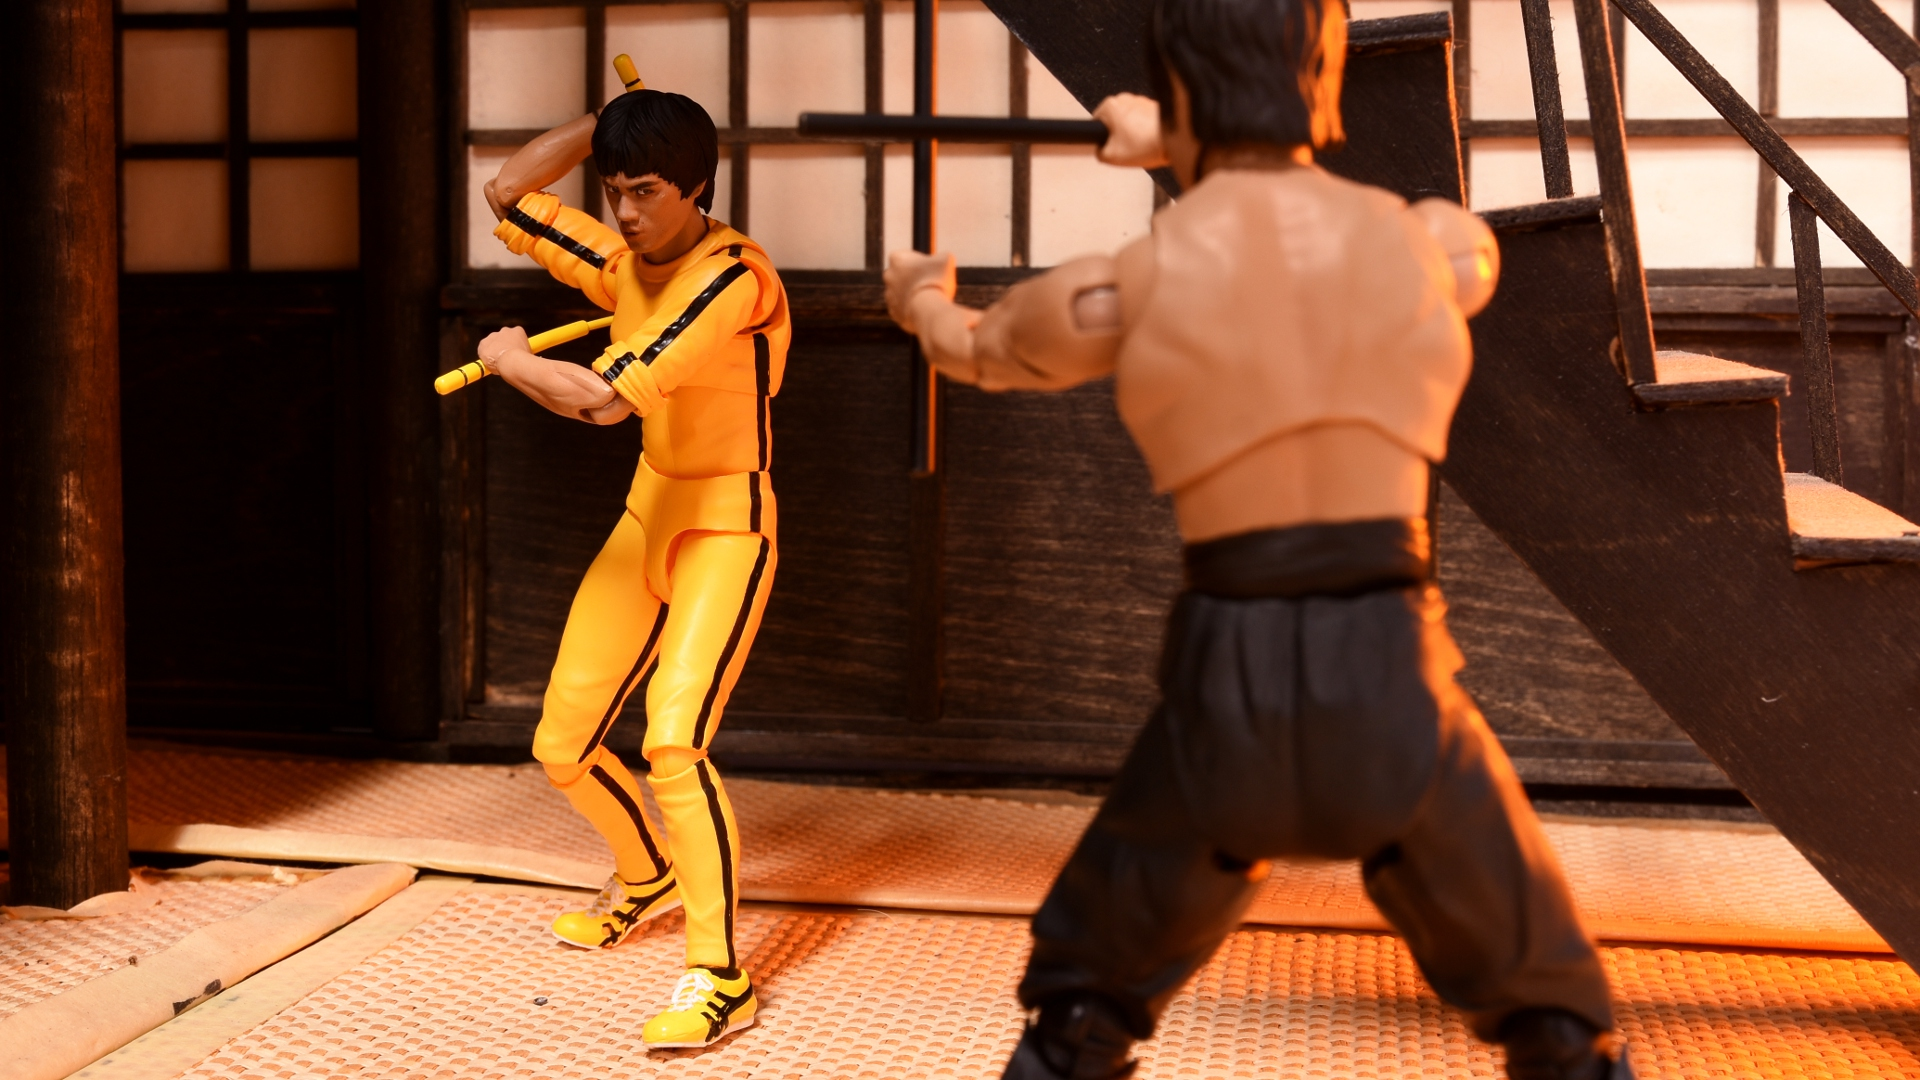 Figuarts Game Of Death Bruce Lee 32